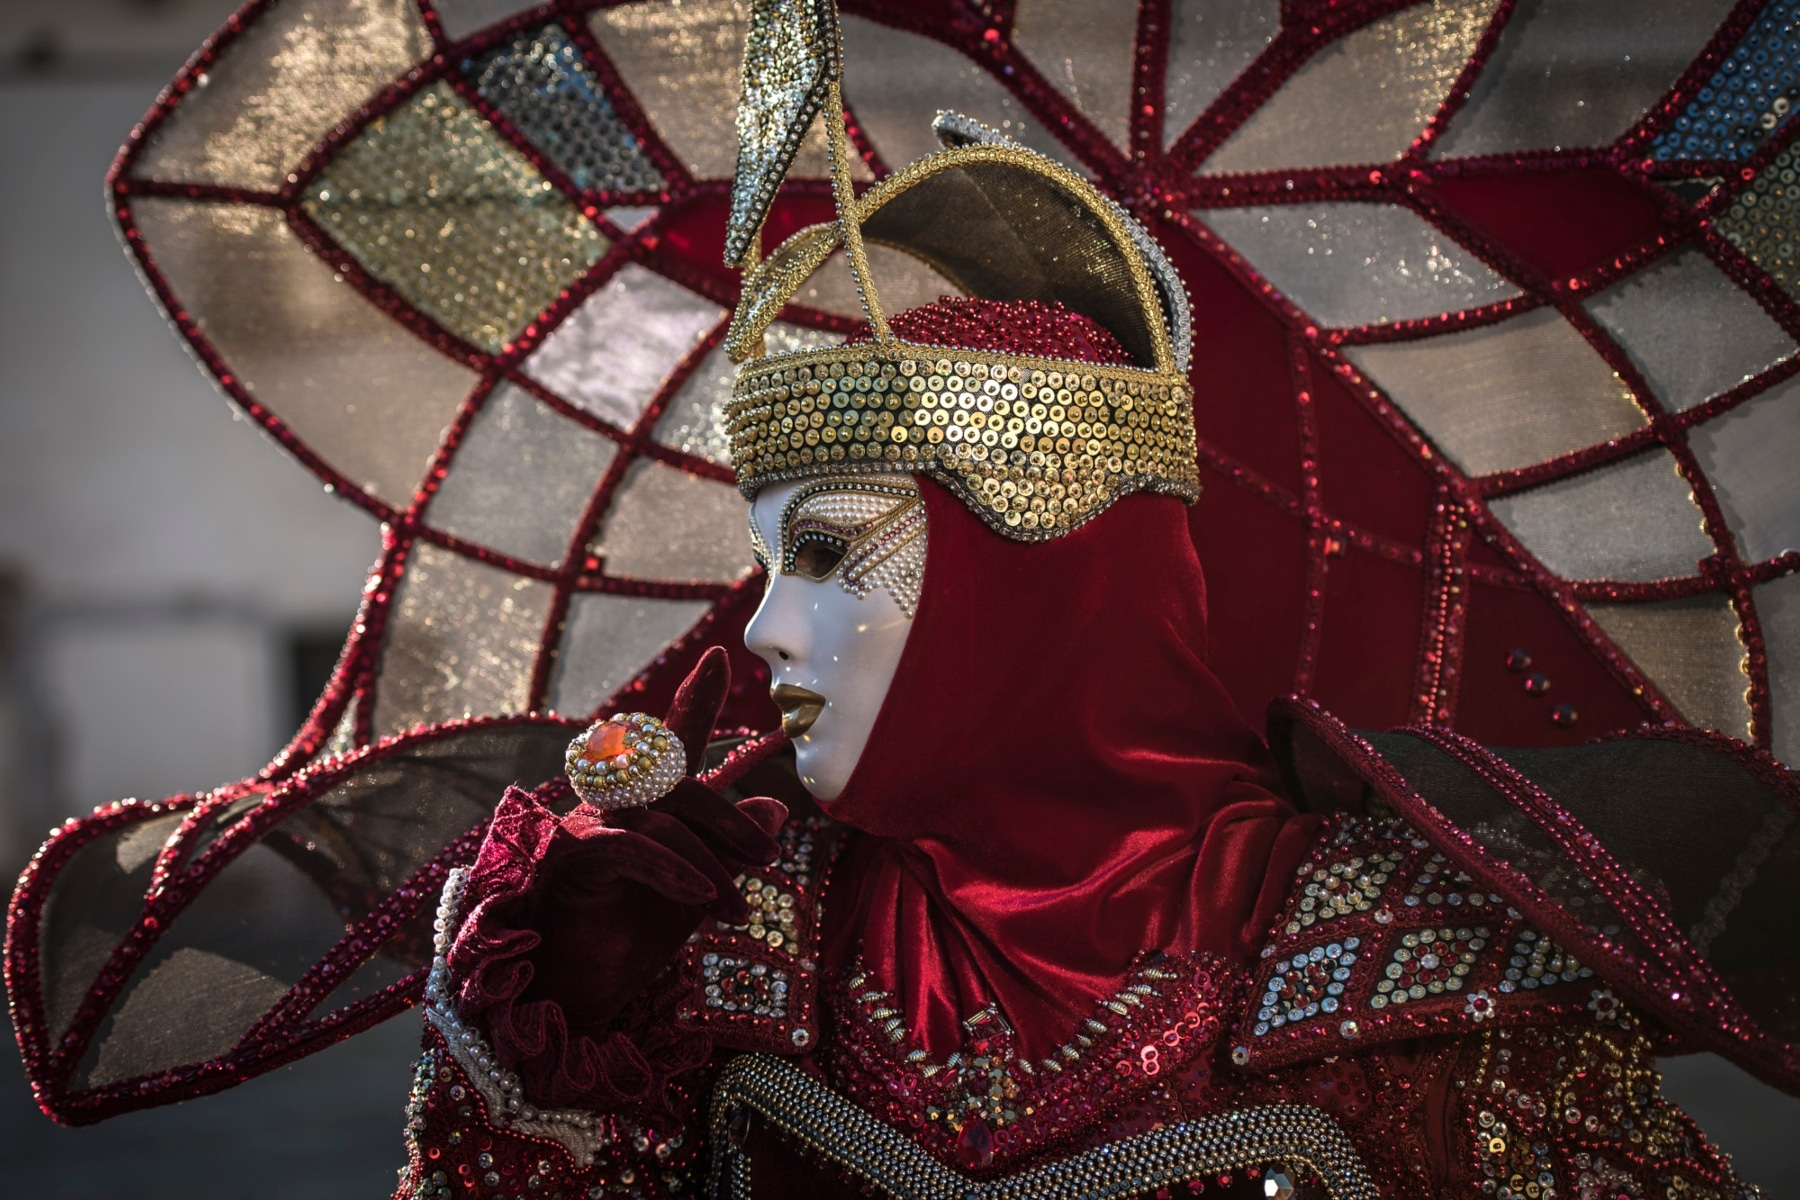 'Something Wicked This Way Comes' and the Gothic Carnivalesque